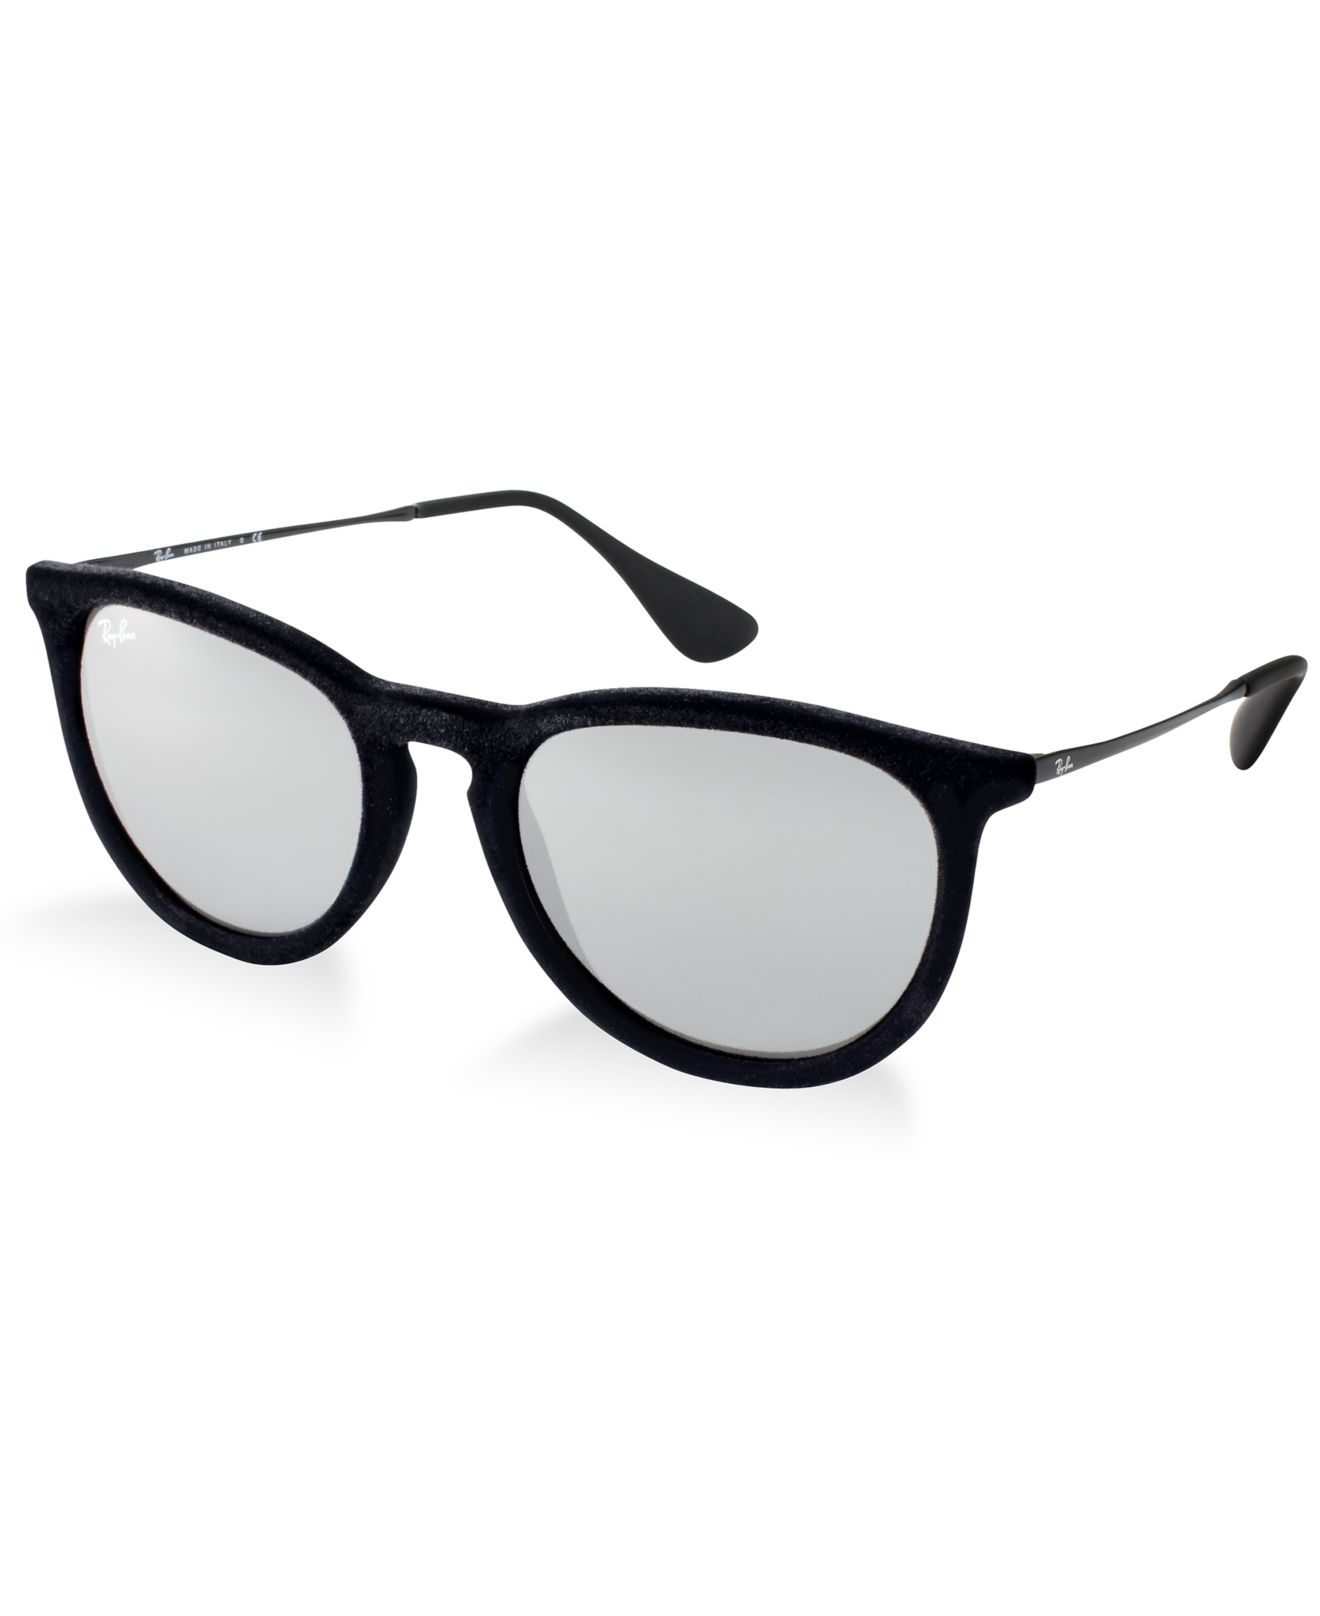 c02bfed3a6 Ray Ban Sunglasses Online Shopclues